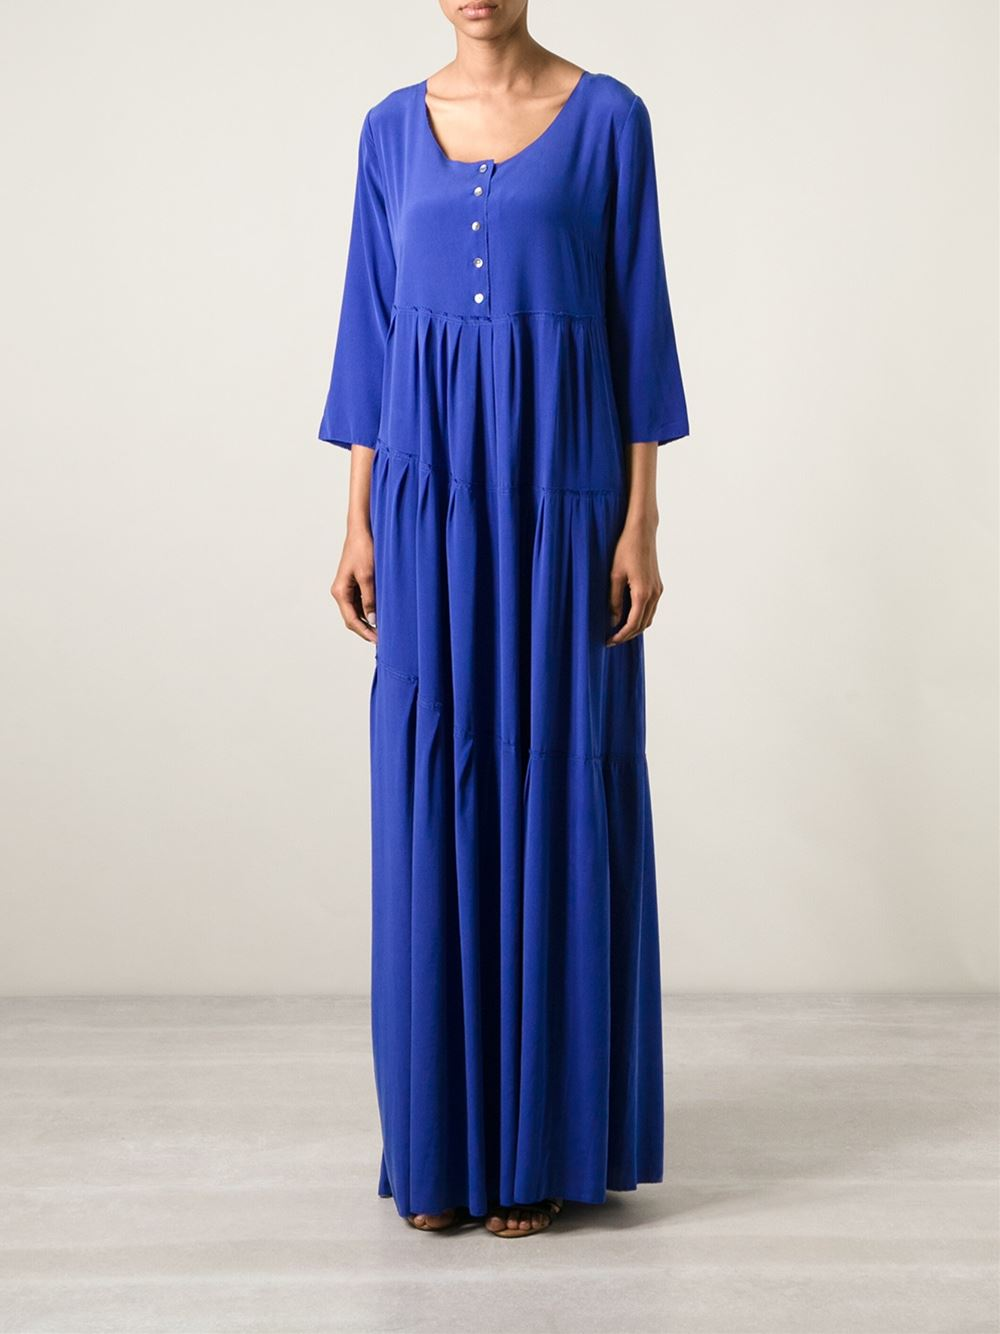 P.A.R.O.S.H. blue long pleated henley dress